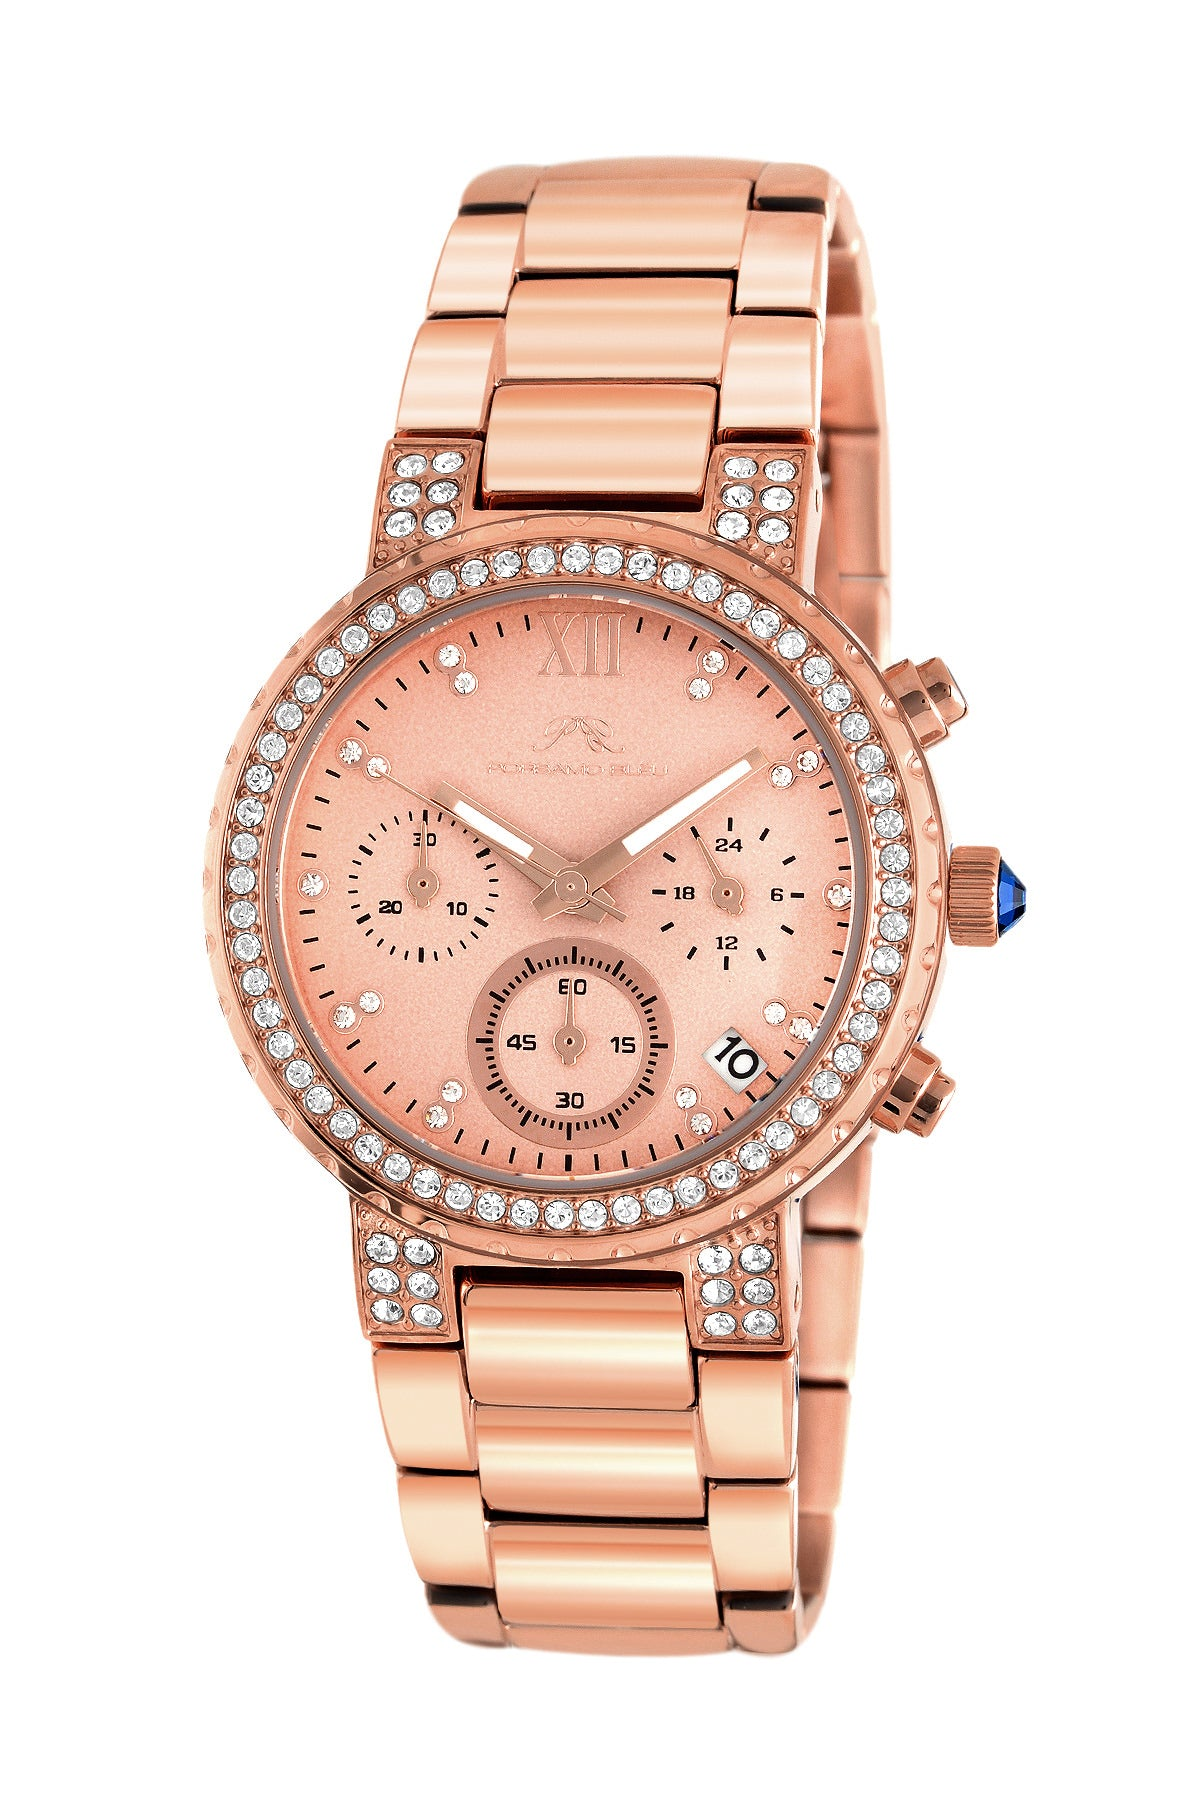 Porsamo Bleu Pilar luxury chronograph women's stainless steel watch, rose 501CPIS